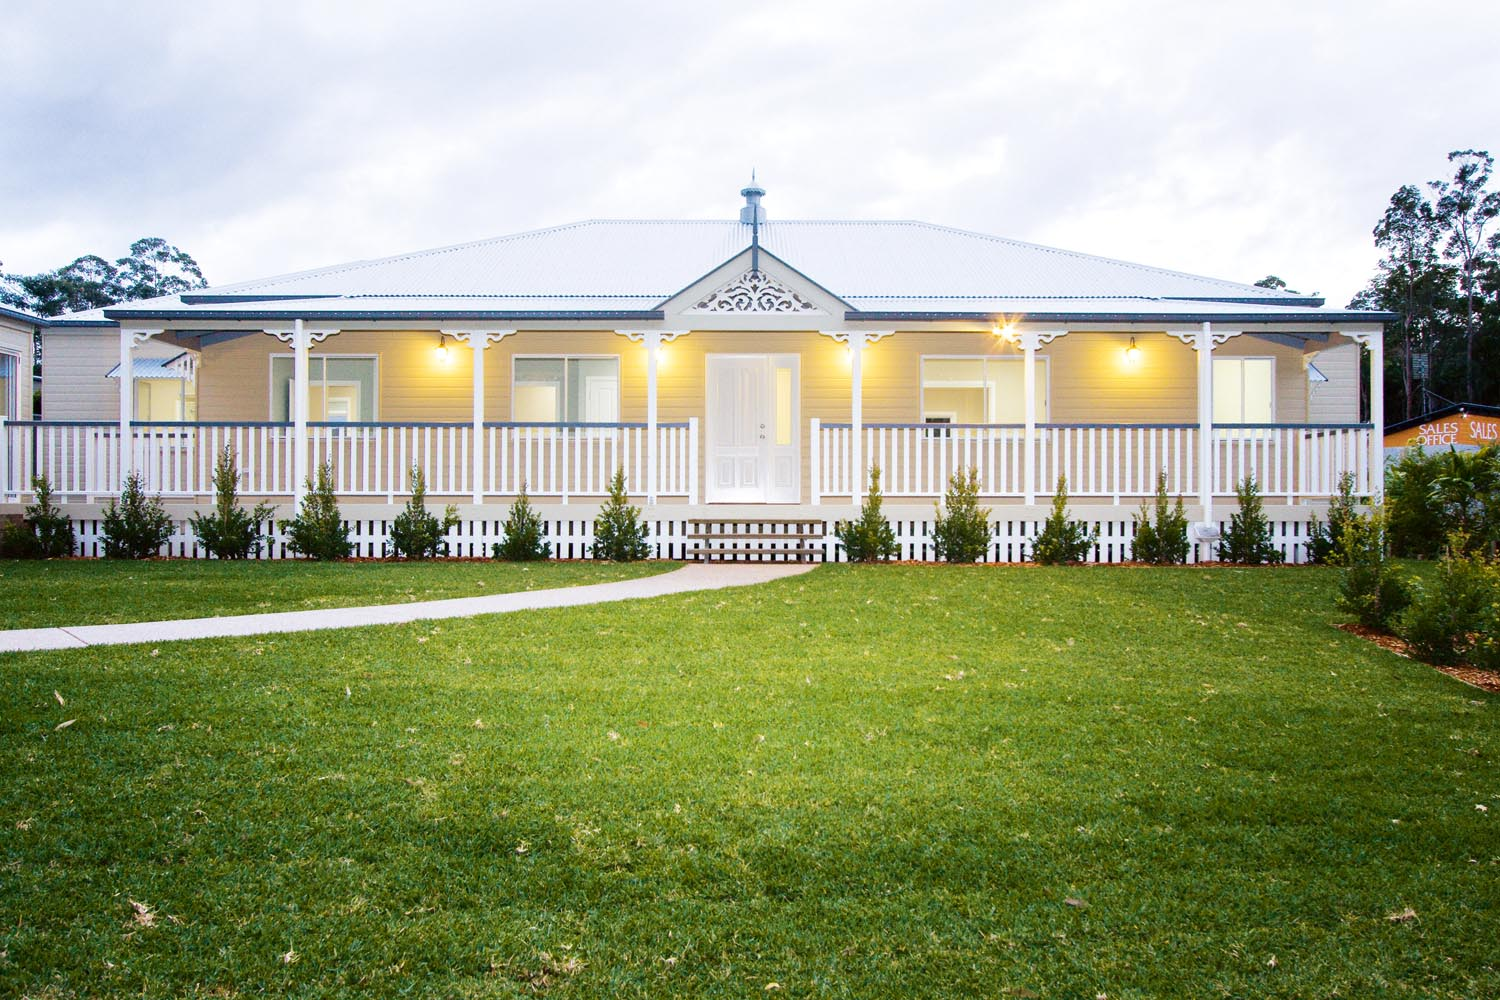 More for less: a classic Queenslander home - exterior front view